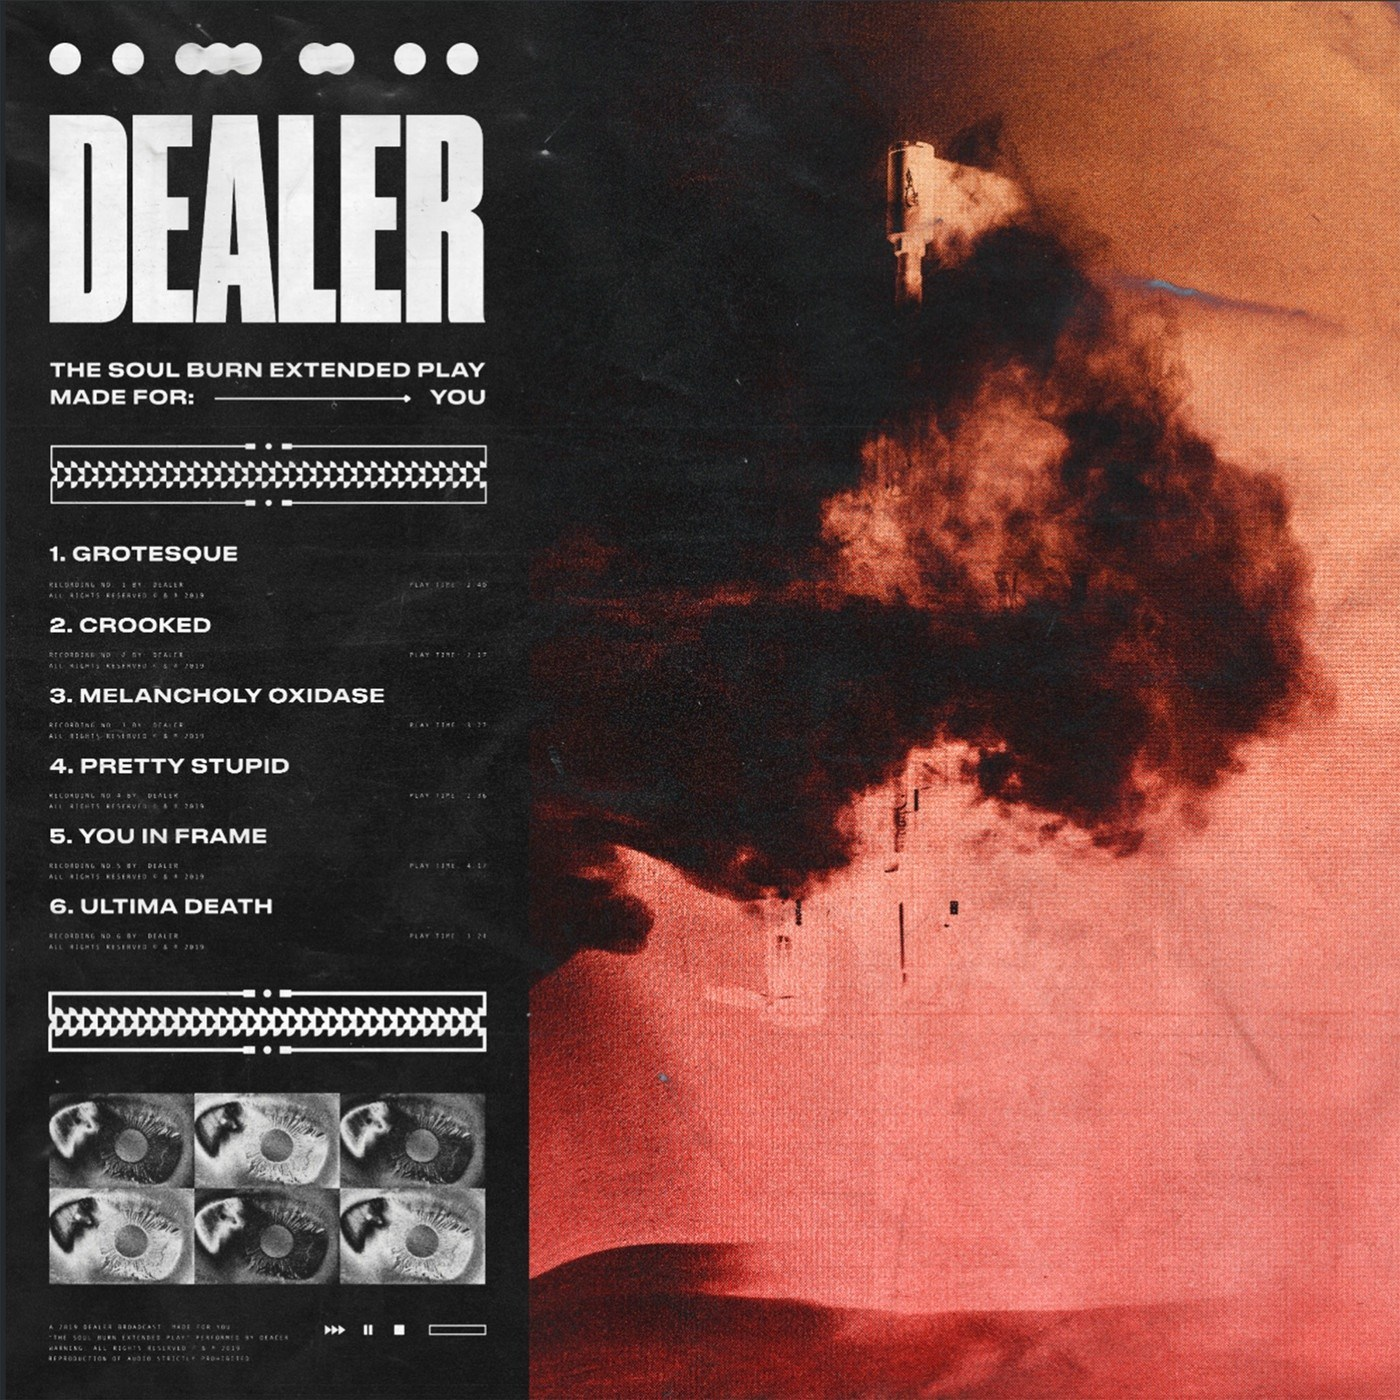 Dealer Soul Burn artwork